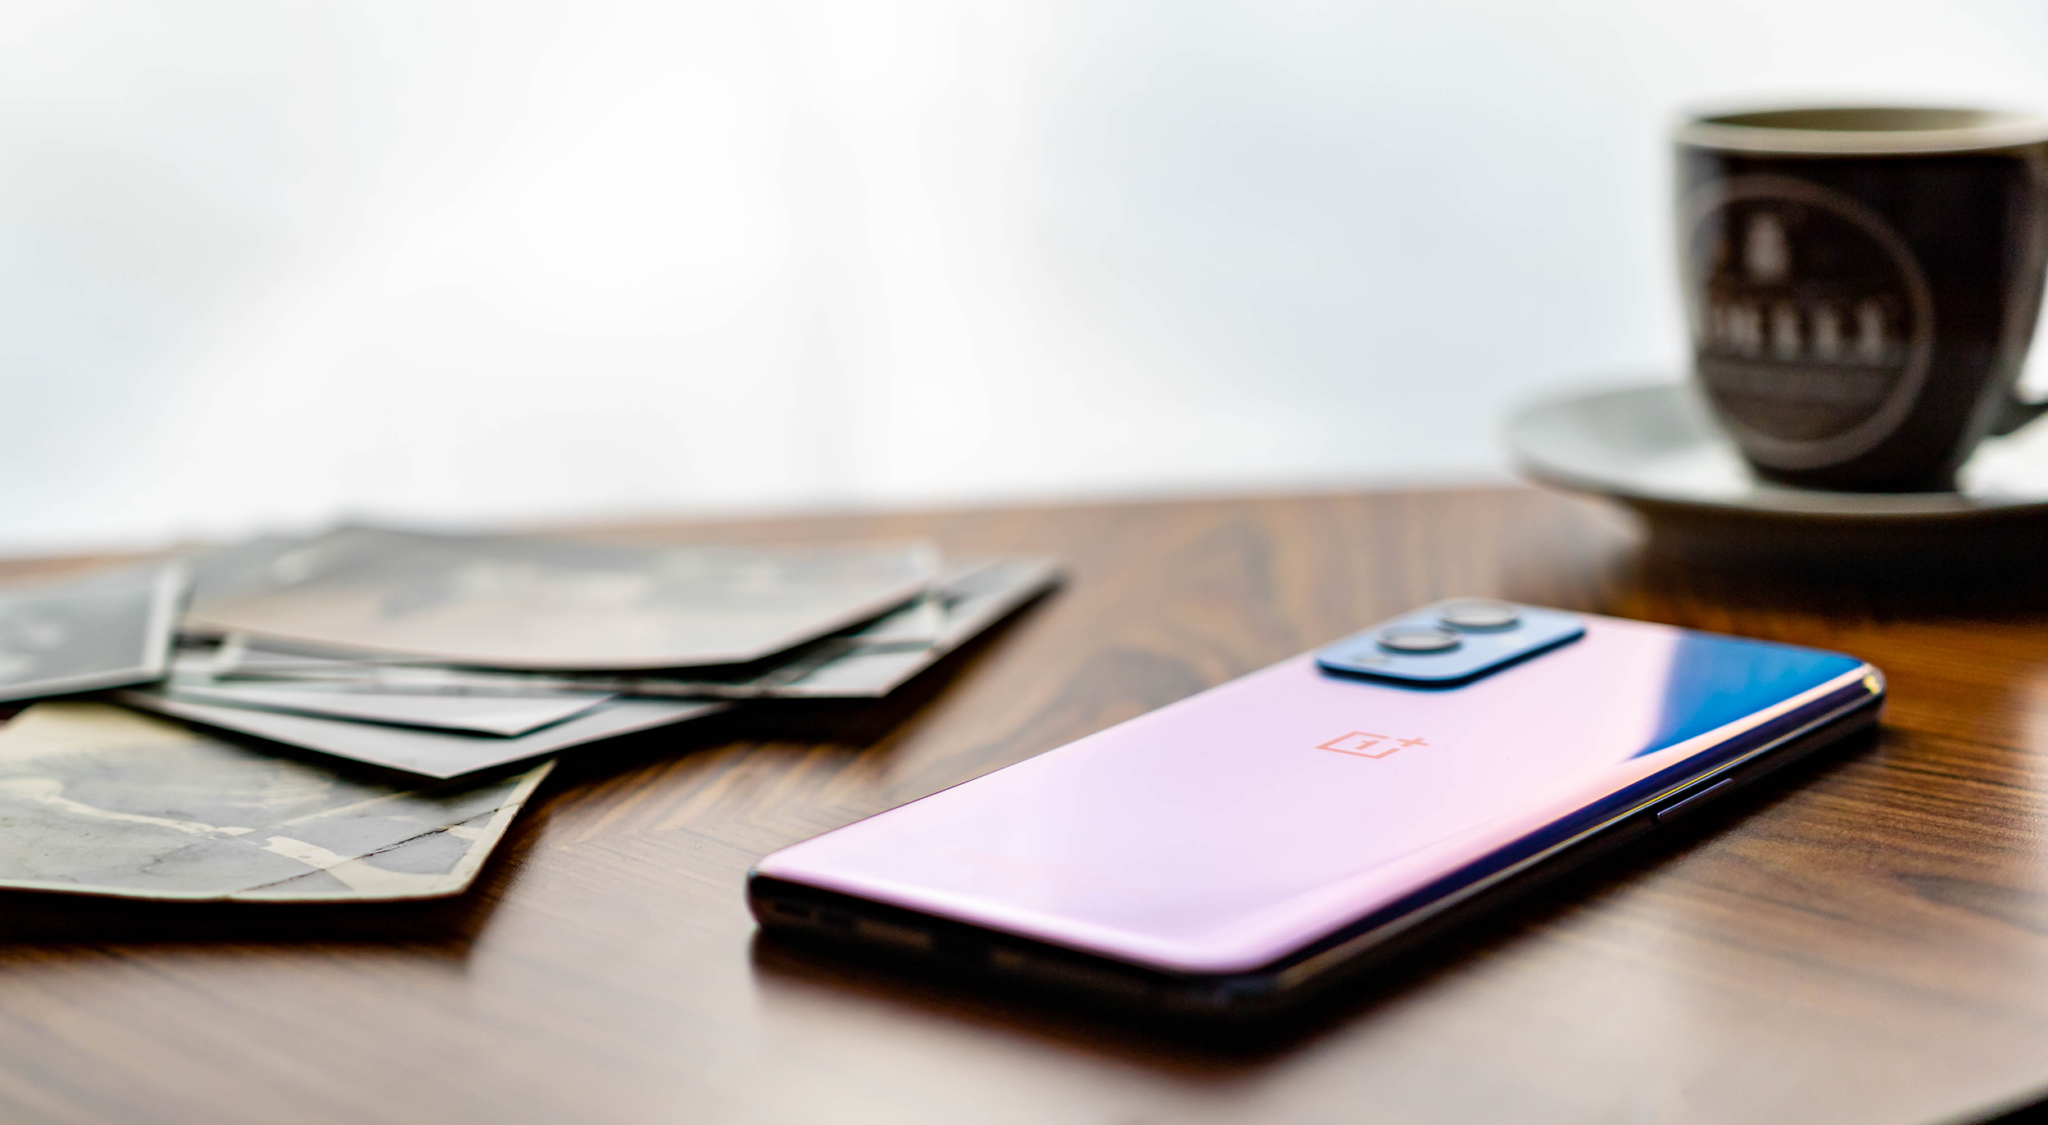 OnePlus 9 Review - Lifestyle